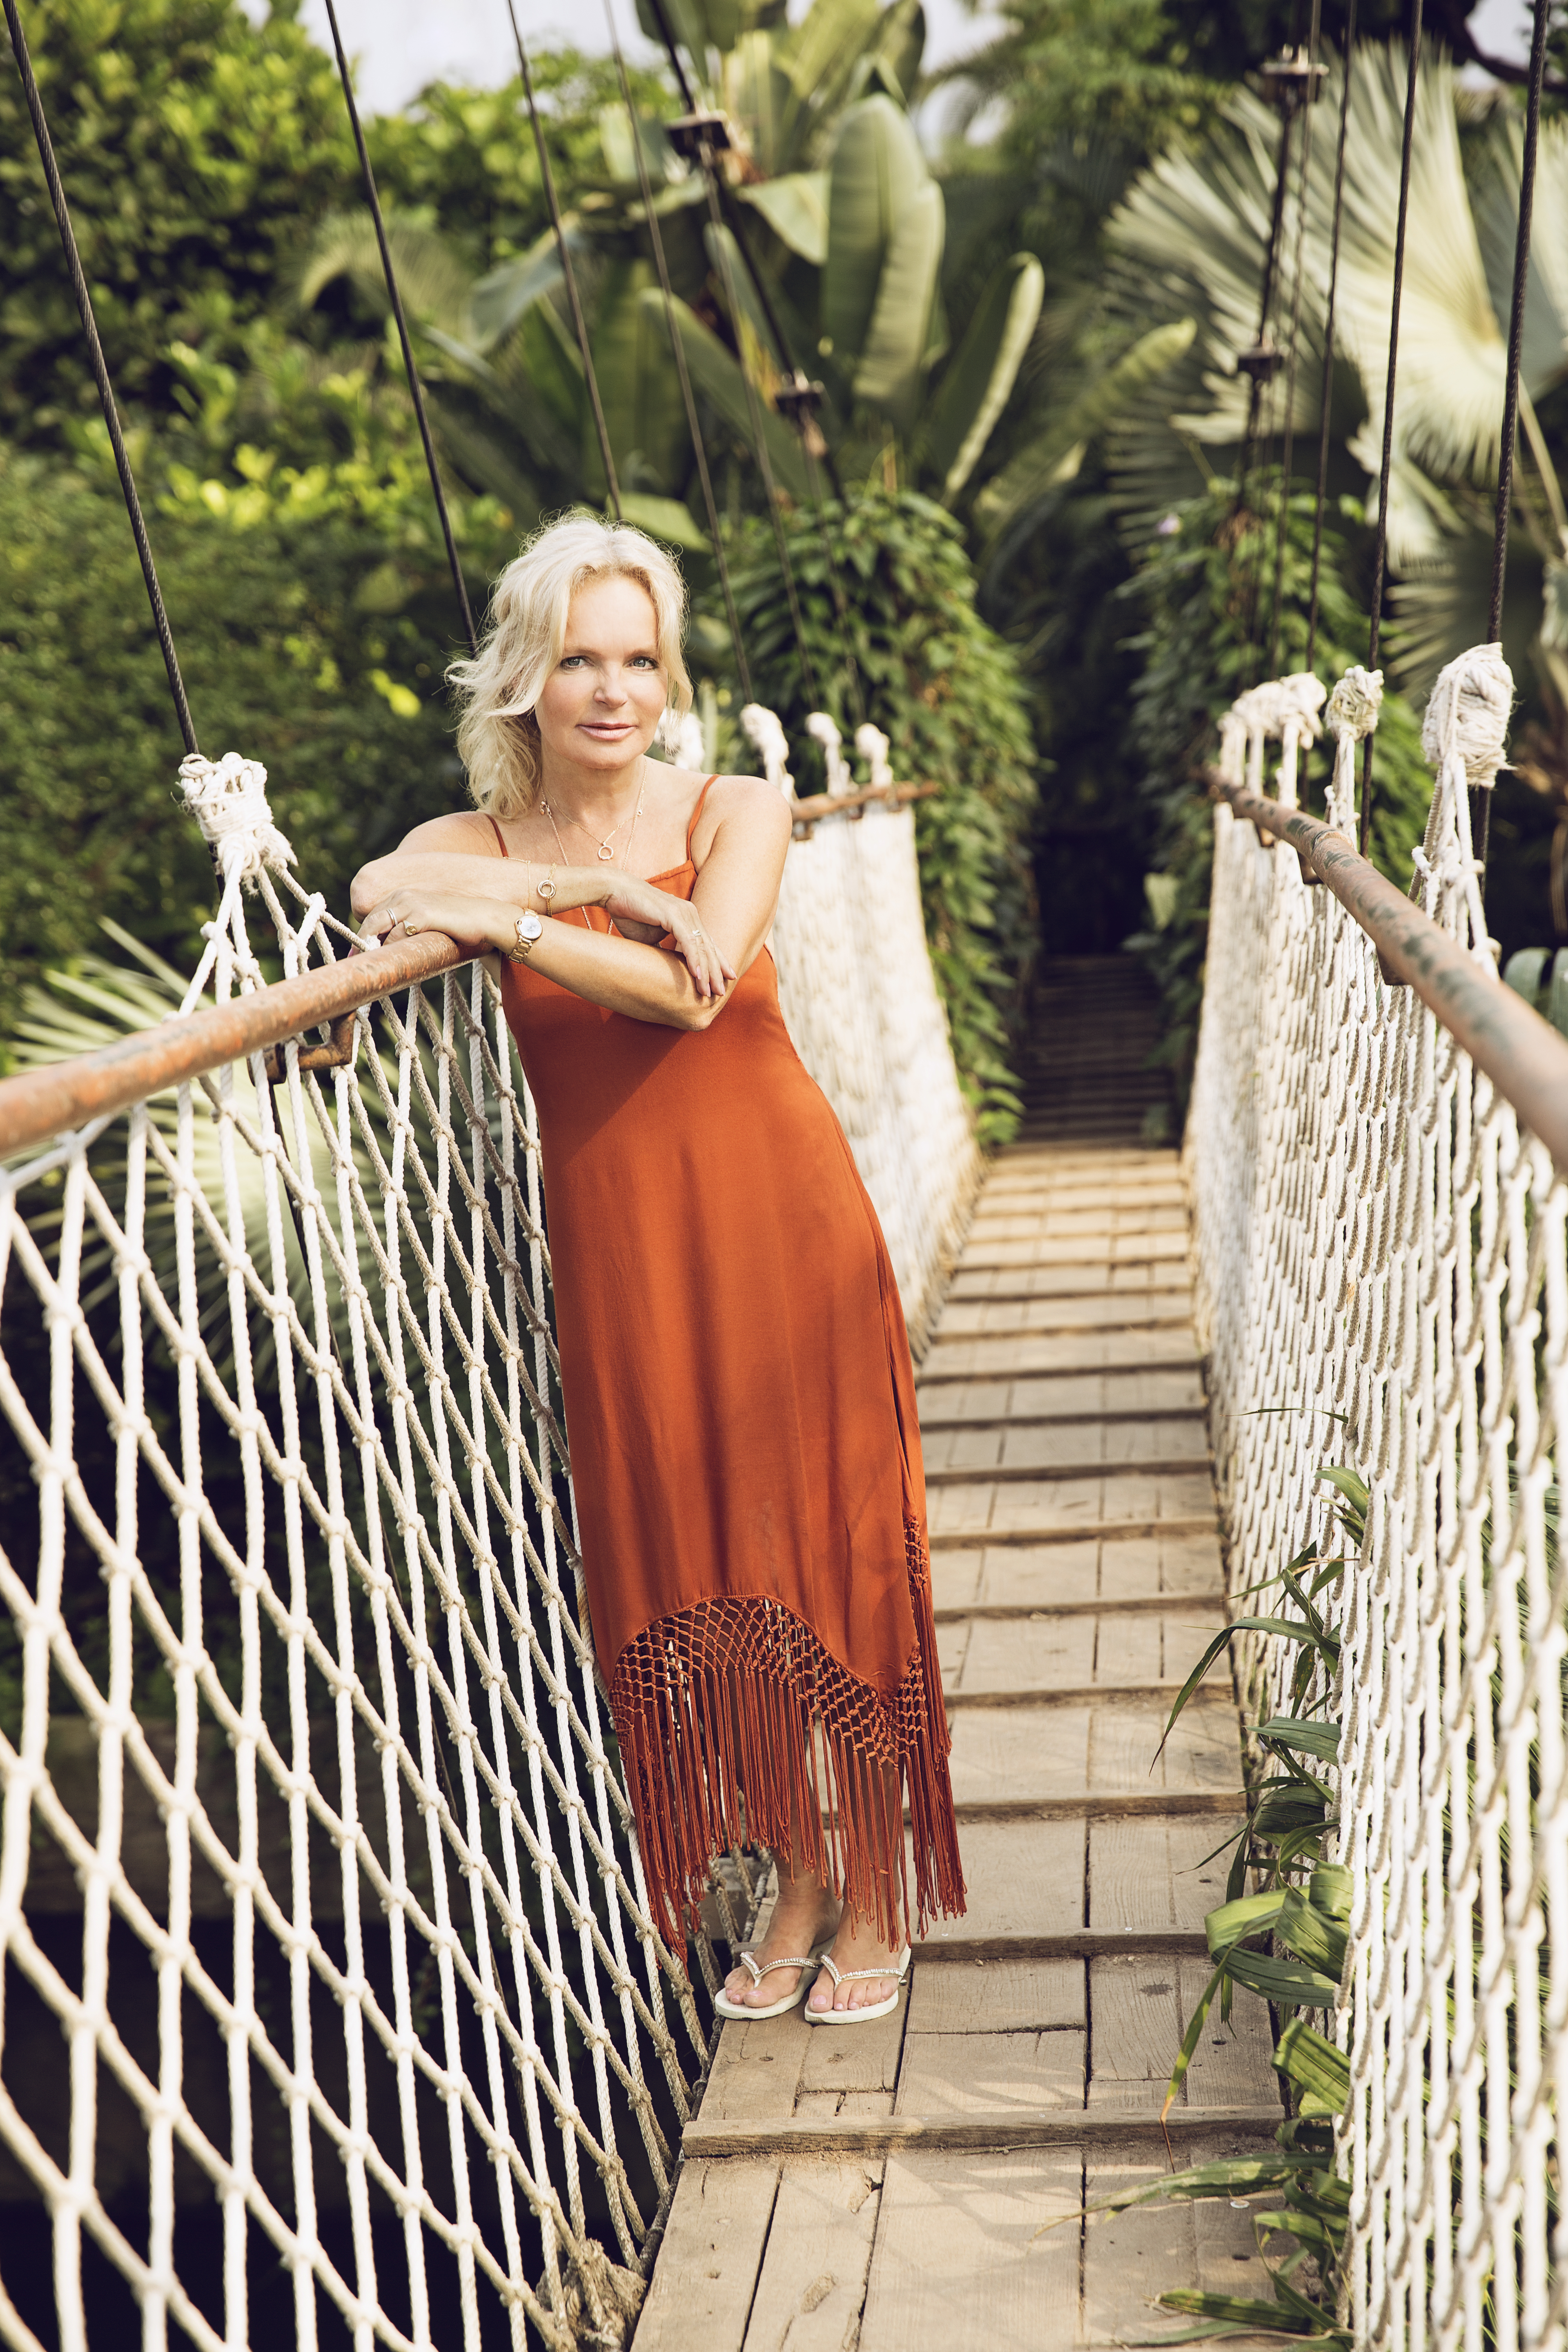 Photo of Author Lucinda Riley wearing a rust-orange sundress, standing on a walkway in lush green scenery. The author is leaning on the railing with arms crossed.